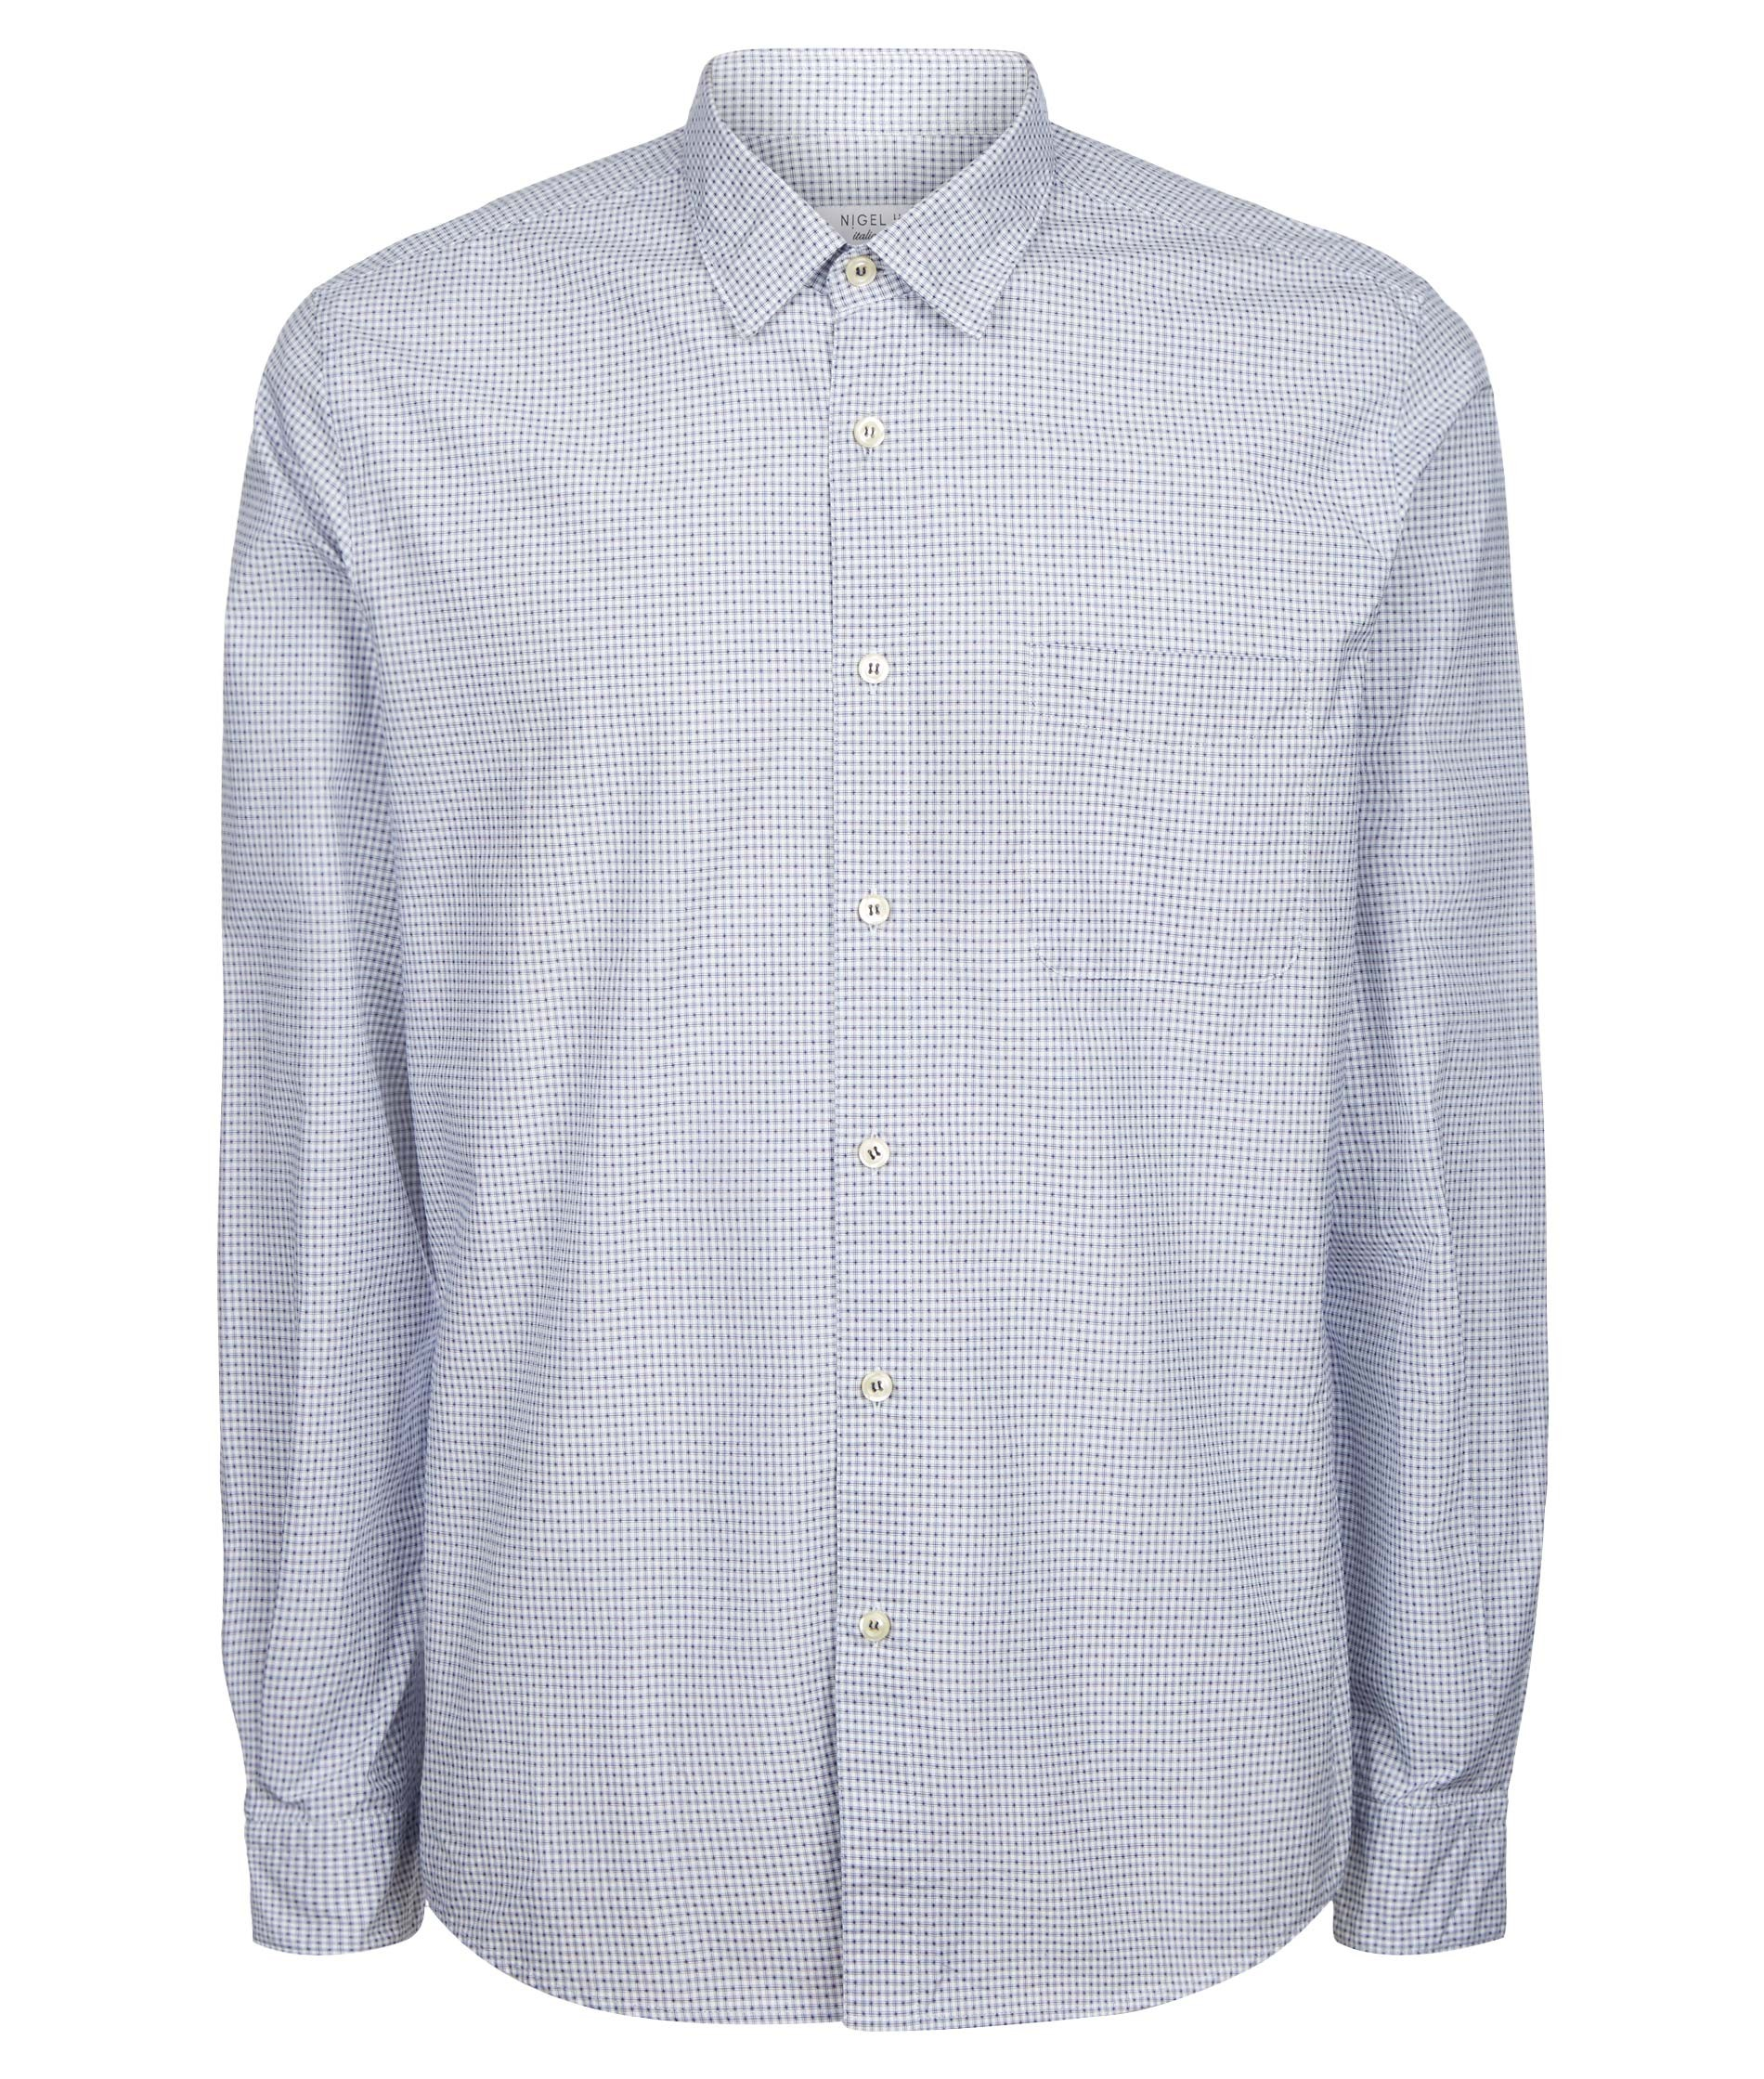 Nigel Hall Textured Navy and White Shirt - Vic